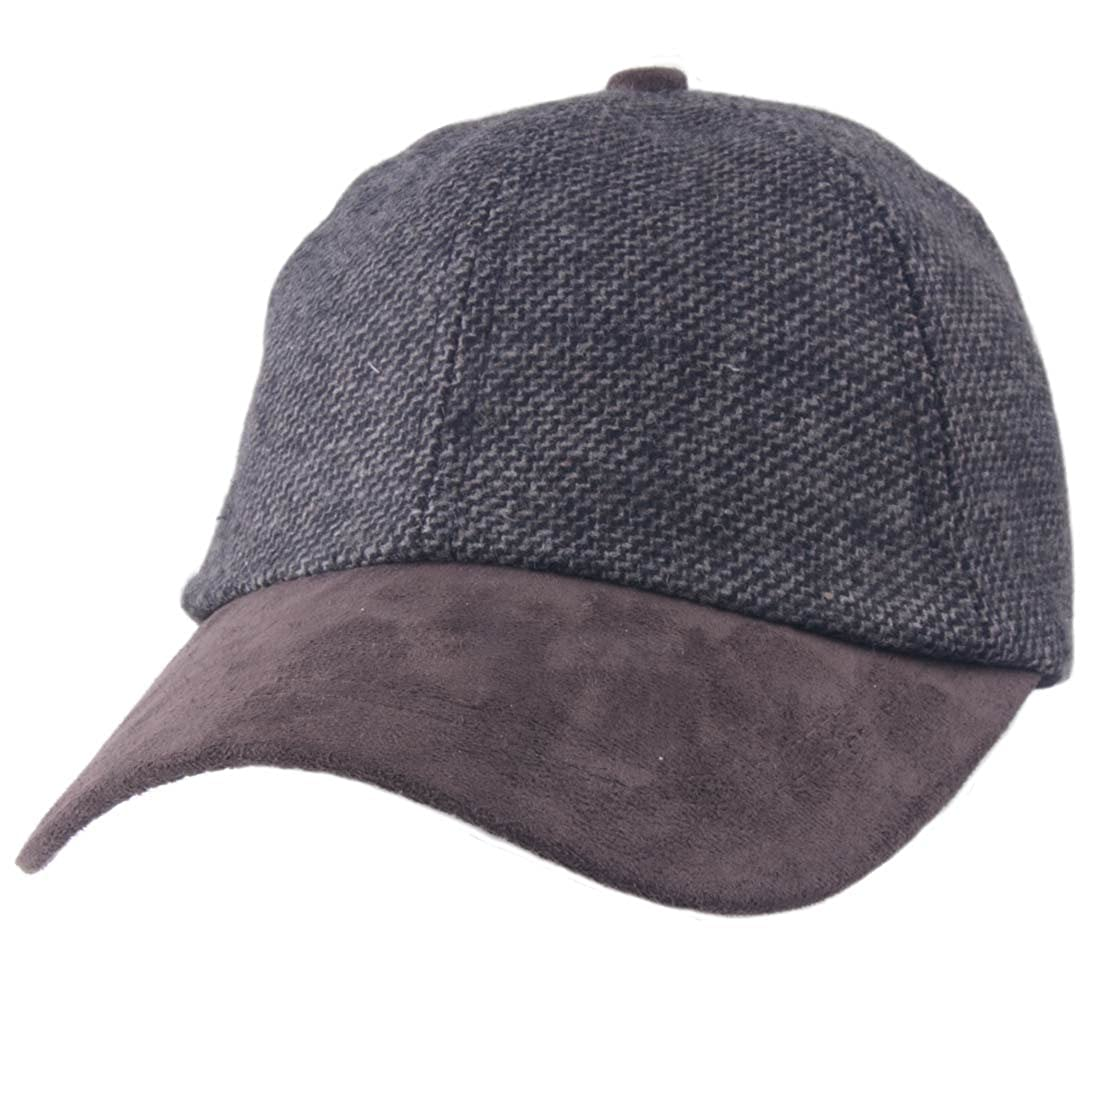 3cb6f9e70fa Carrolls Irish Gifts Tweed Suede Baseball Cap Grey Colour with Brown Bill  Design at Amazon Men s Clothing store